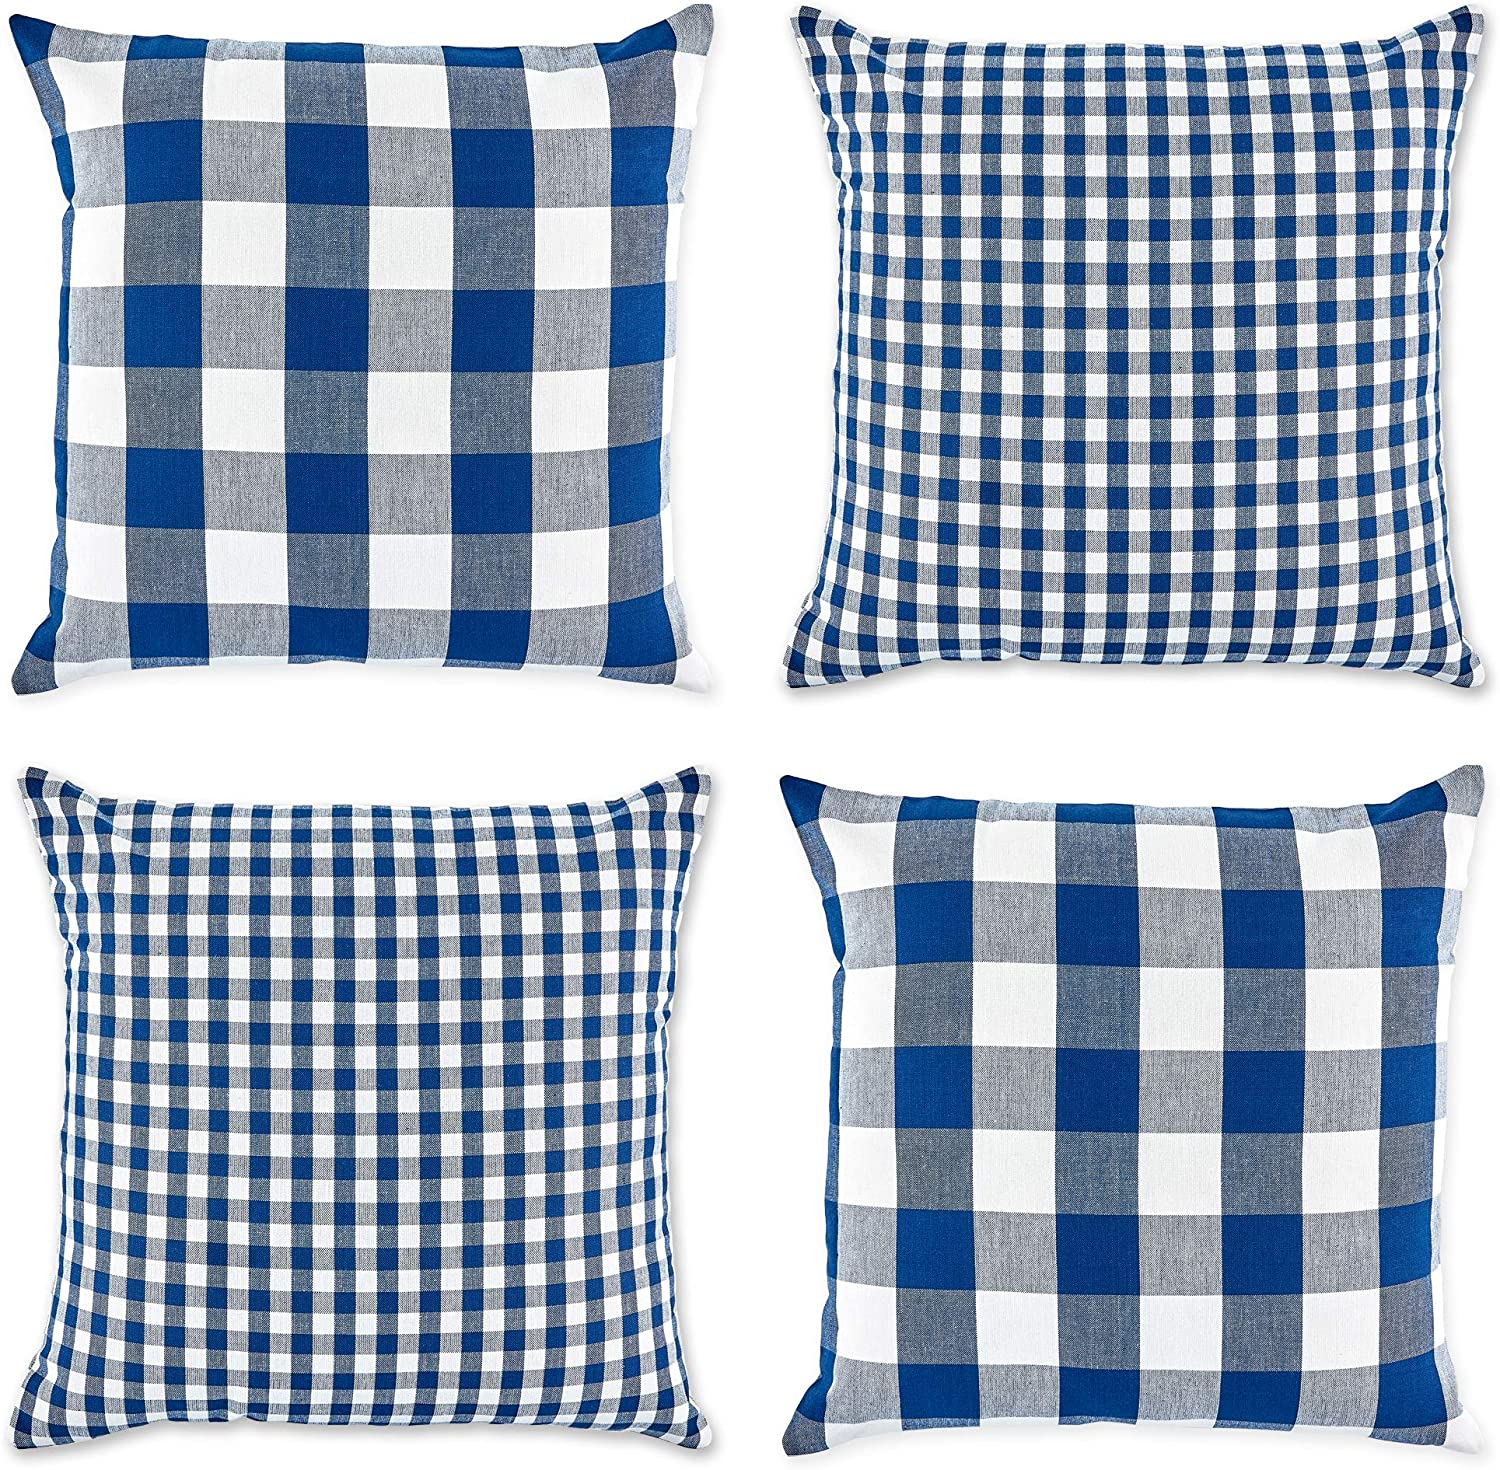 DII Gingham/Check Pillow Cover, 18x18, Navy/Off-White